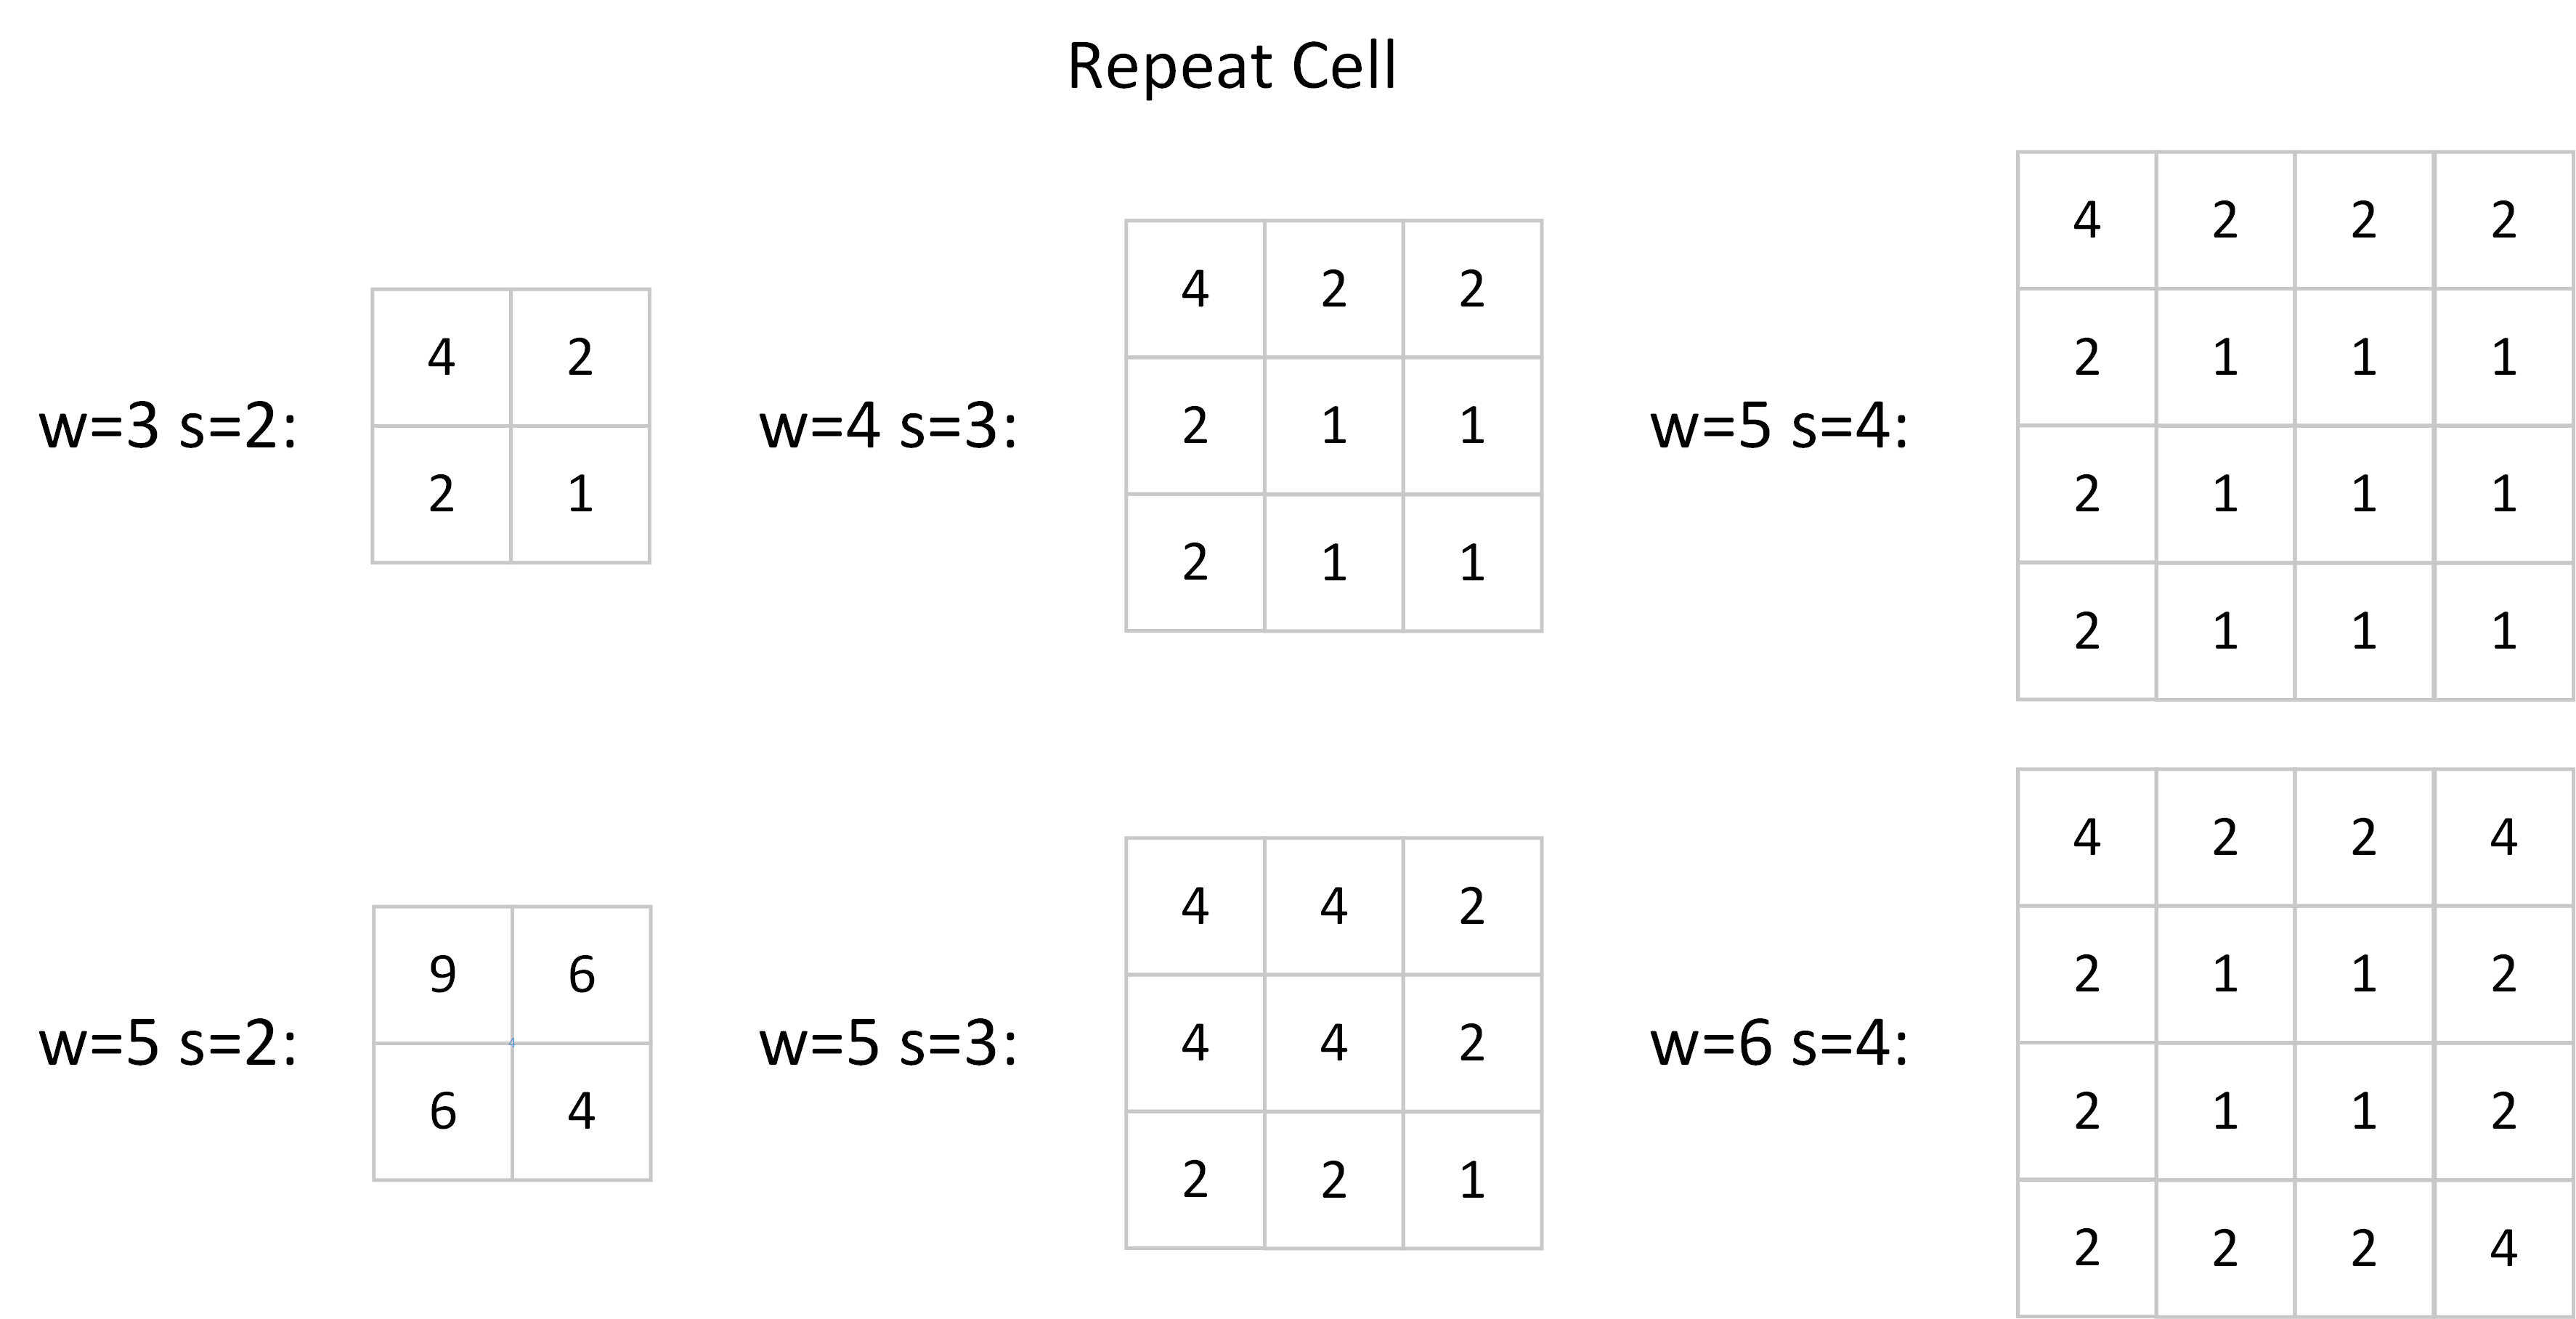 Figure 2. Repeated cells of some generally used $w$ and $s$